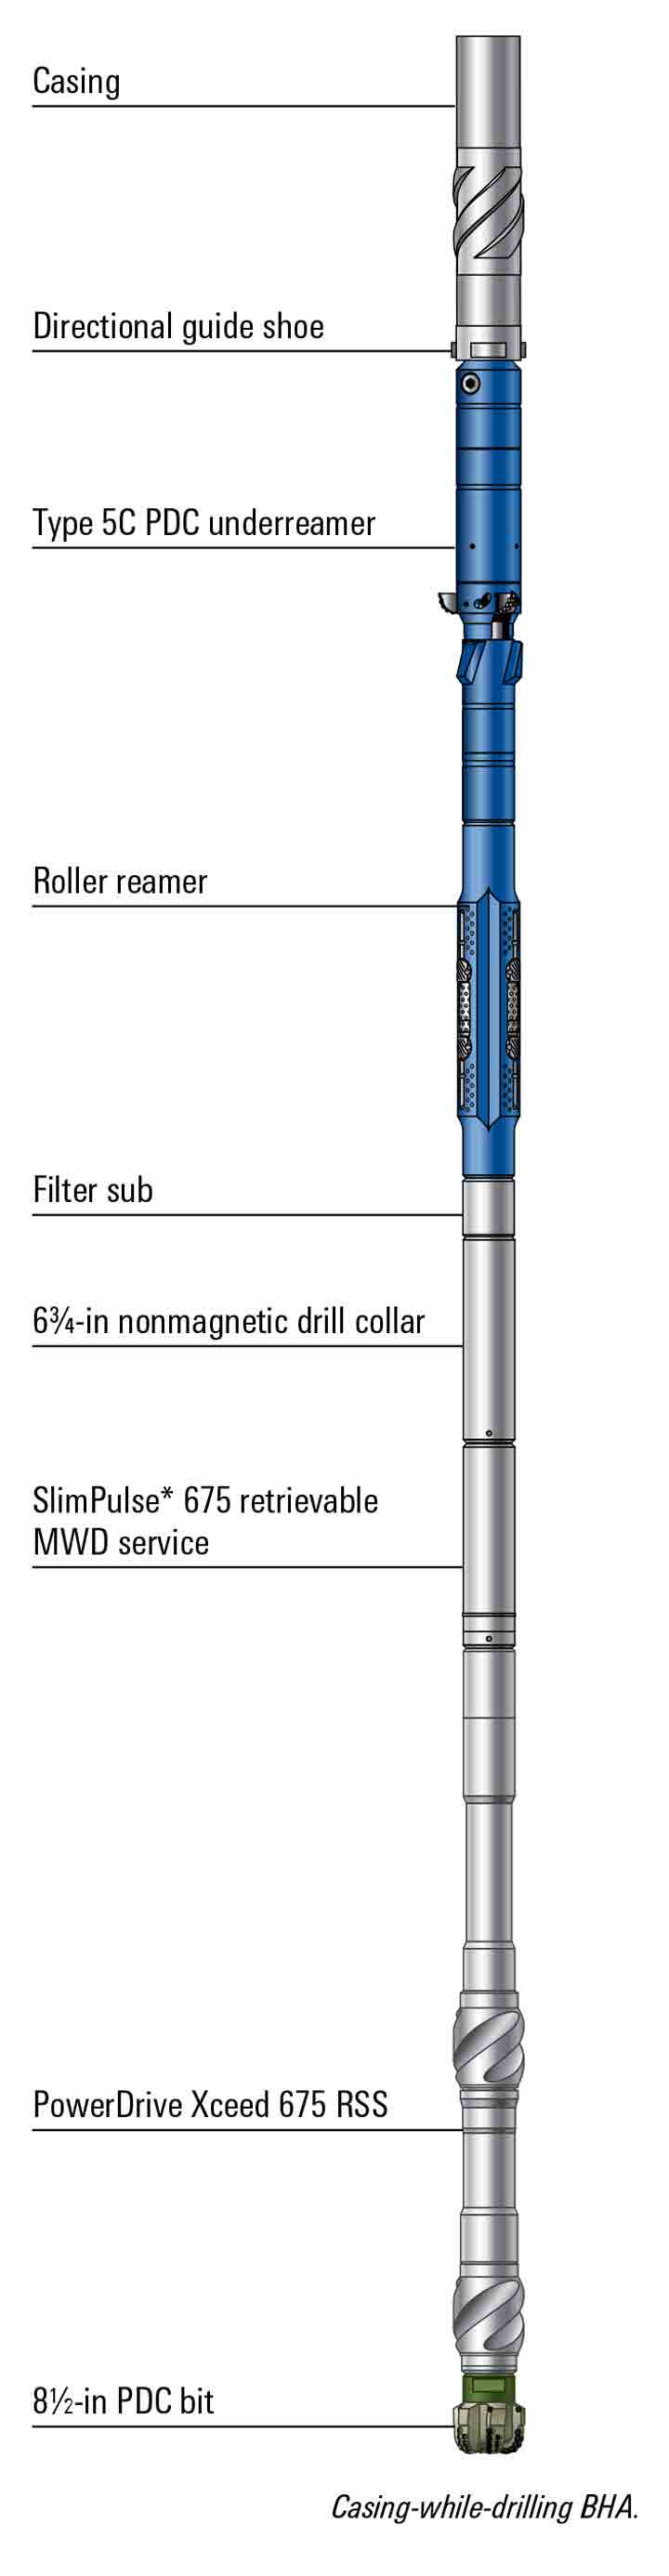 Graphic: Saudi Aramco Drills Record 4,747-ft Section, Achieves Directional Objectives Using Casing-Drilling Service - Casing-while-drilling BHA.